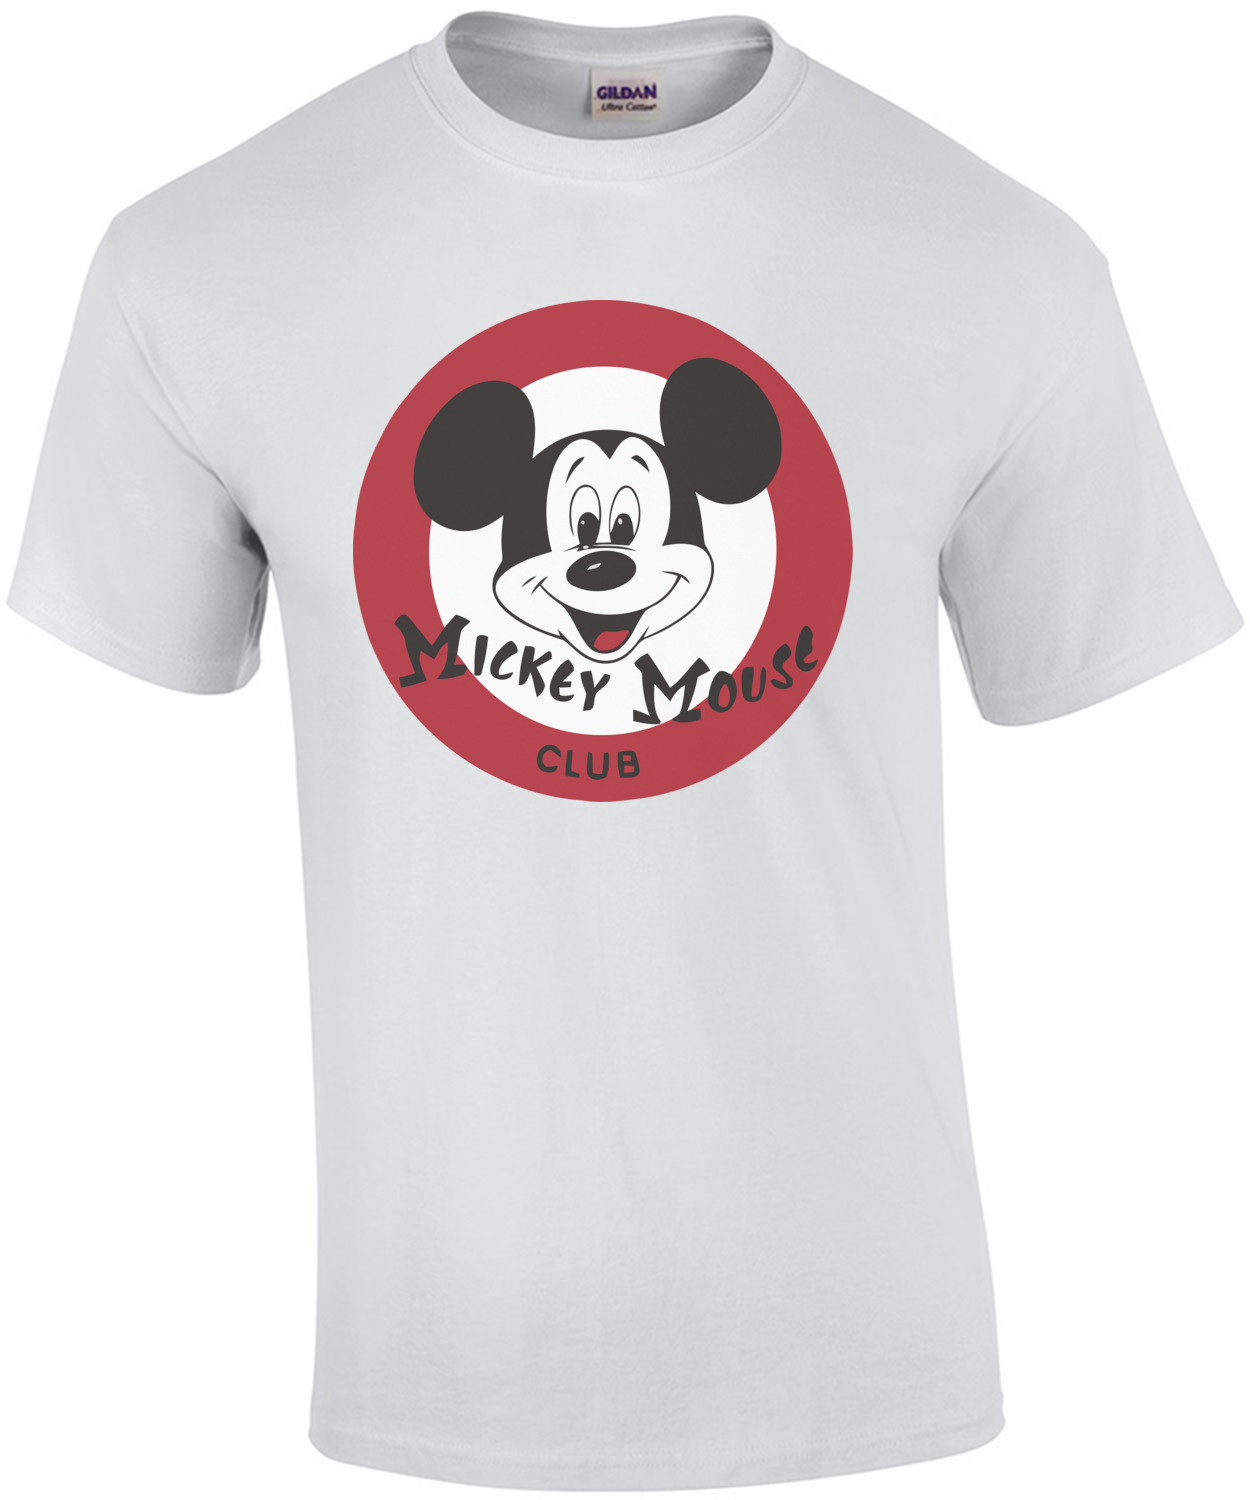 The Mickey Mouse Club T-shirt